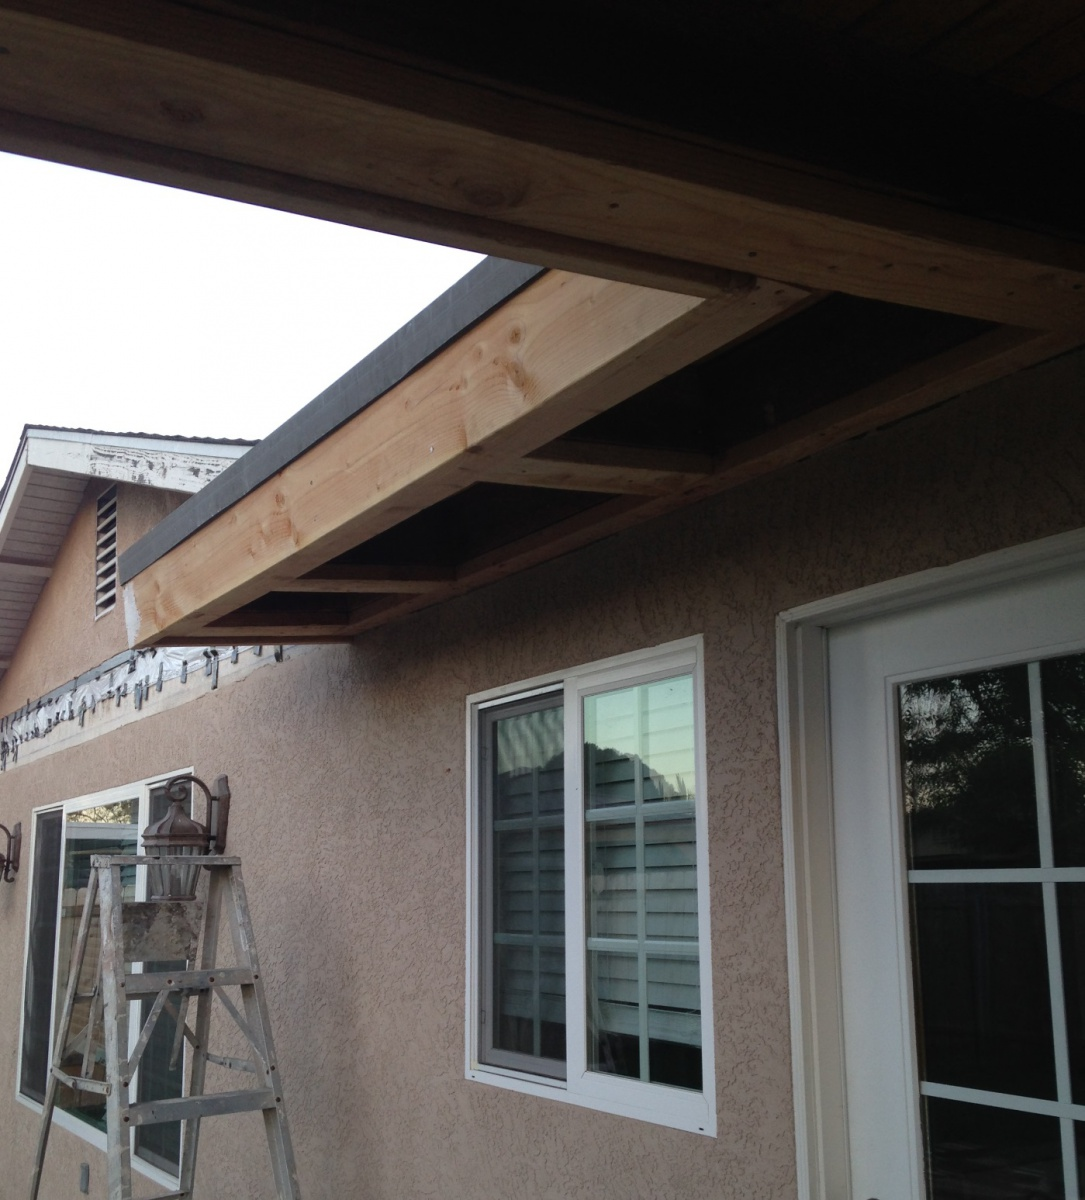 Advice on changing roof shape for resale value-10.jpg